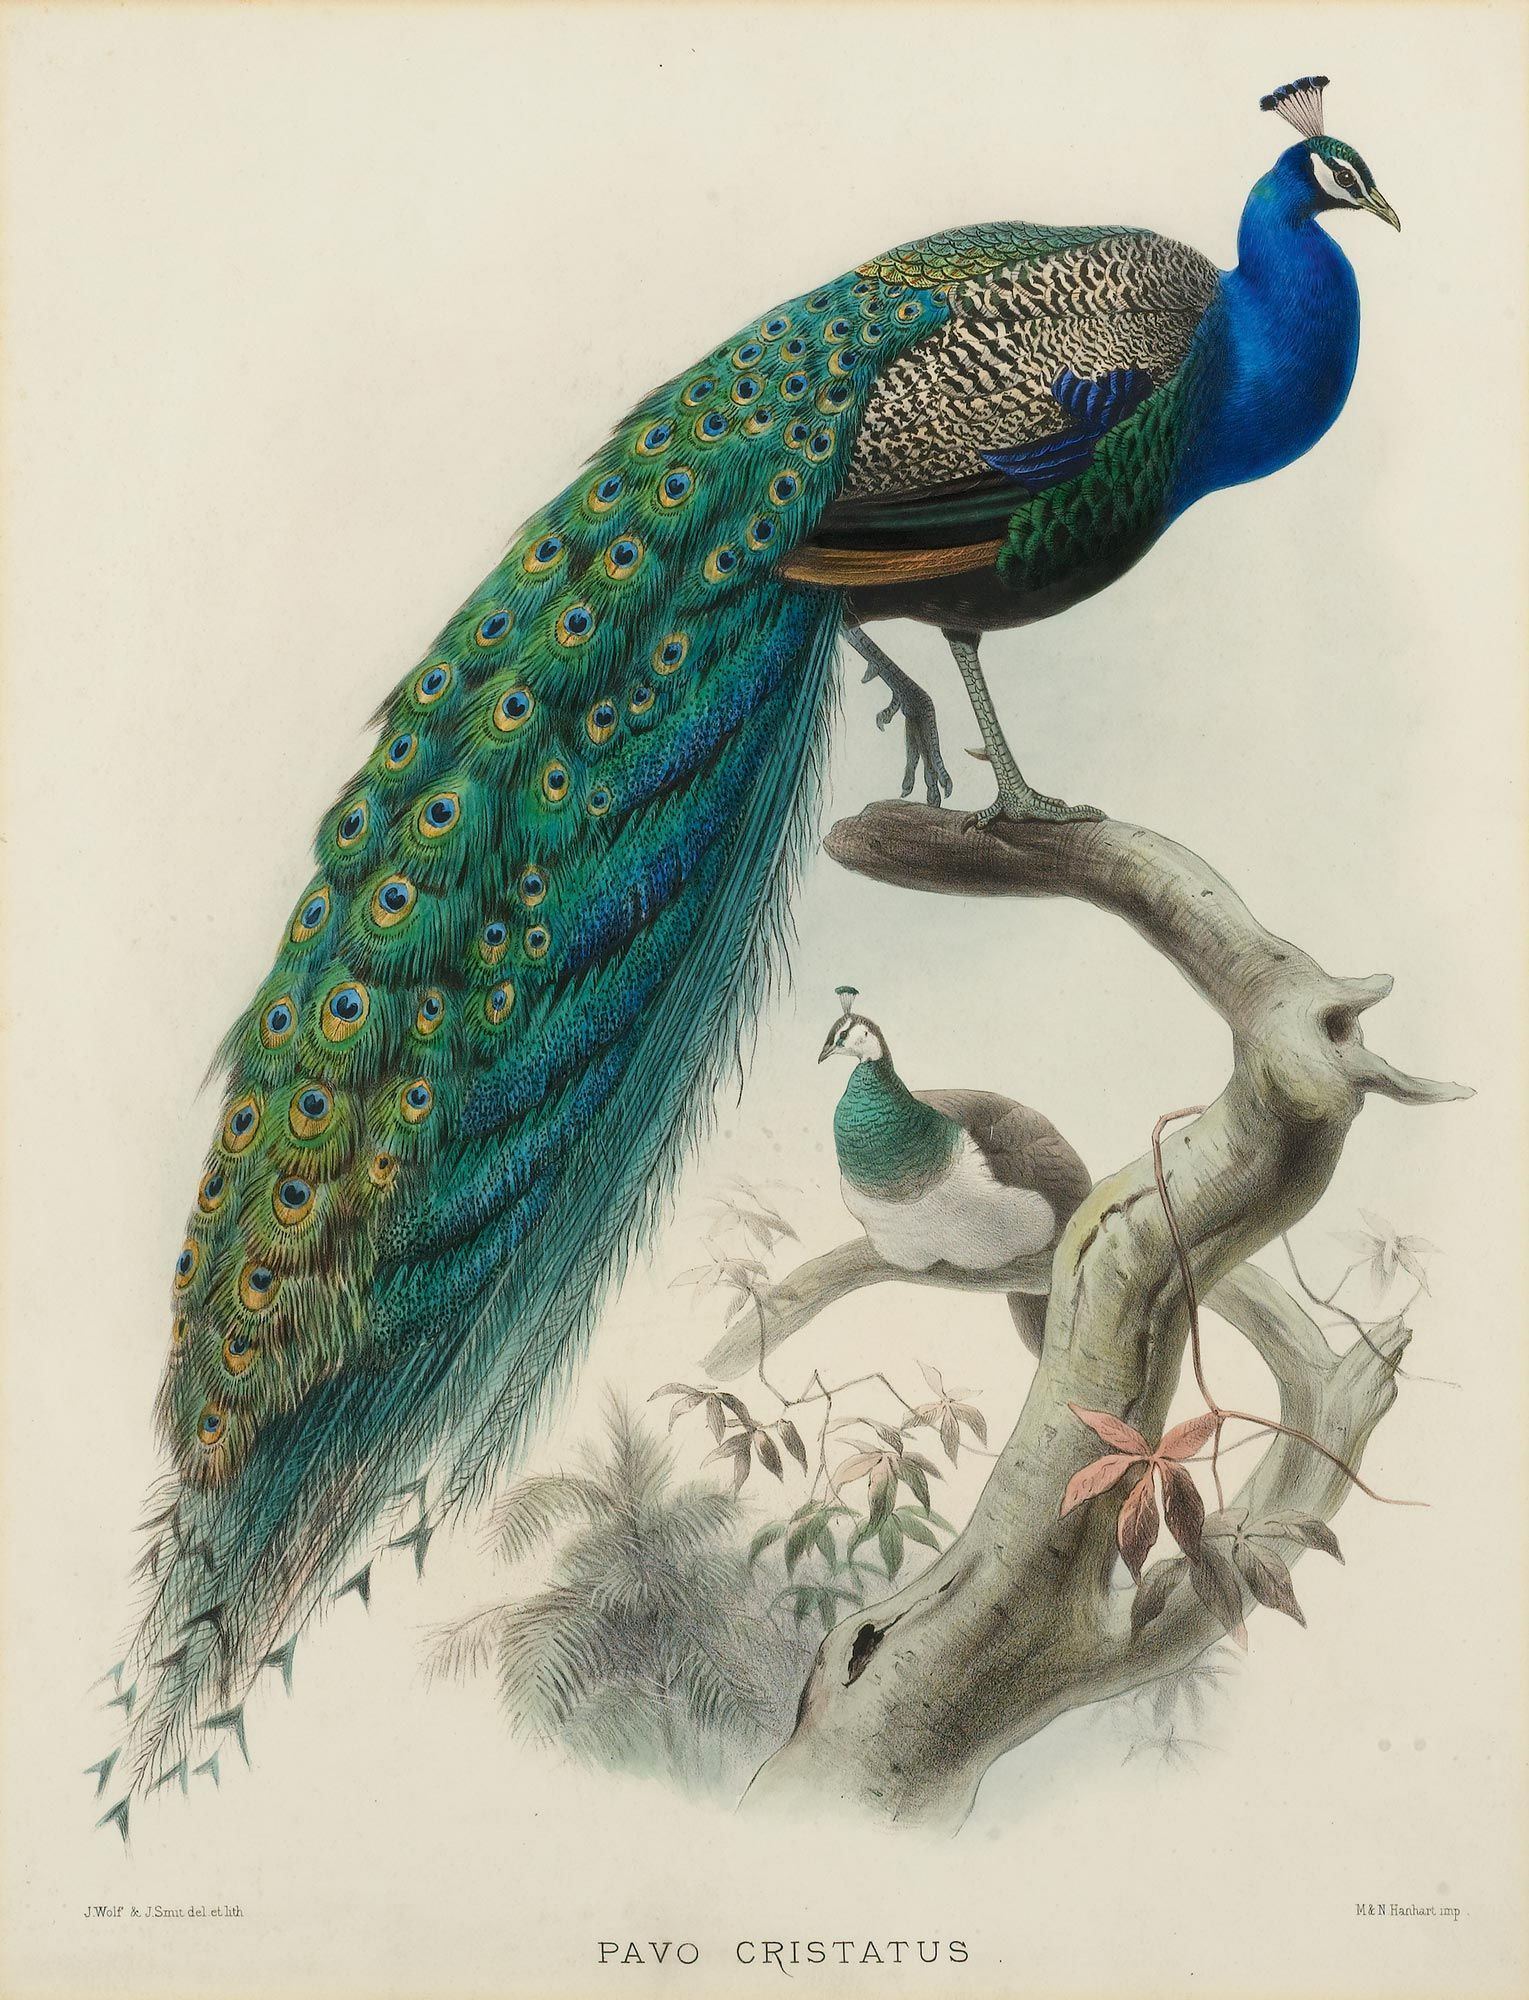 The peacock in myth legend and 19th century history author pavo cristatus by j smit after joseph wolf 1872 biocorpaavc Gallery